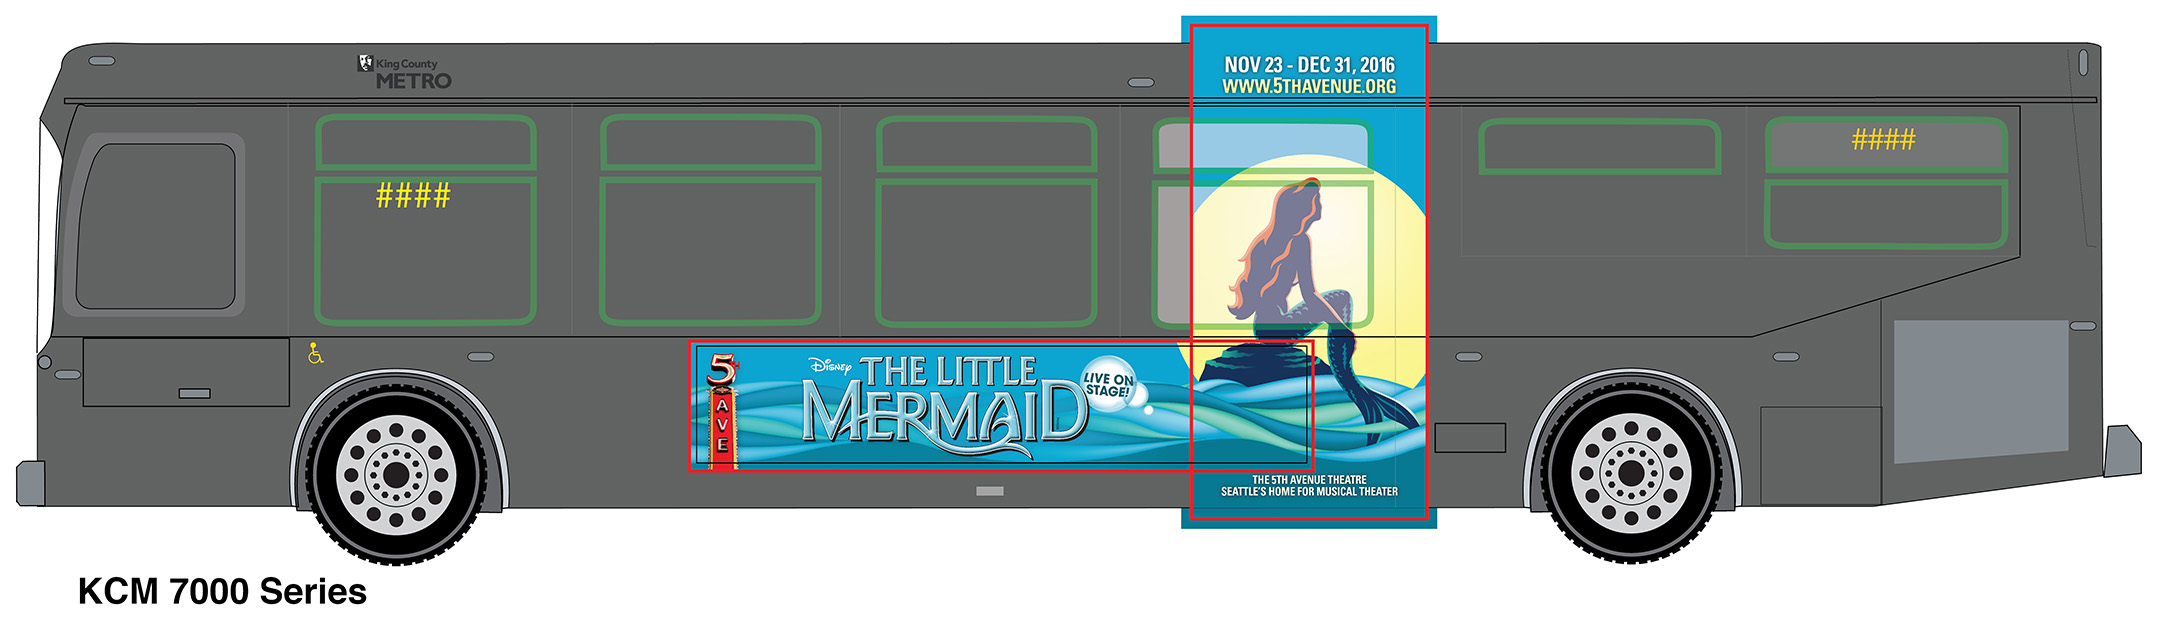 The Little Mermaid  - King with Vertical Panel